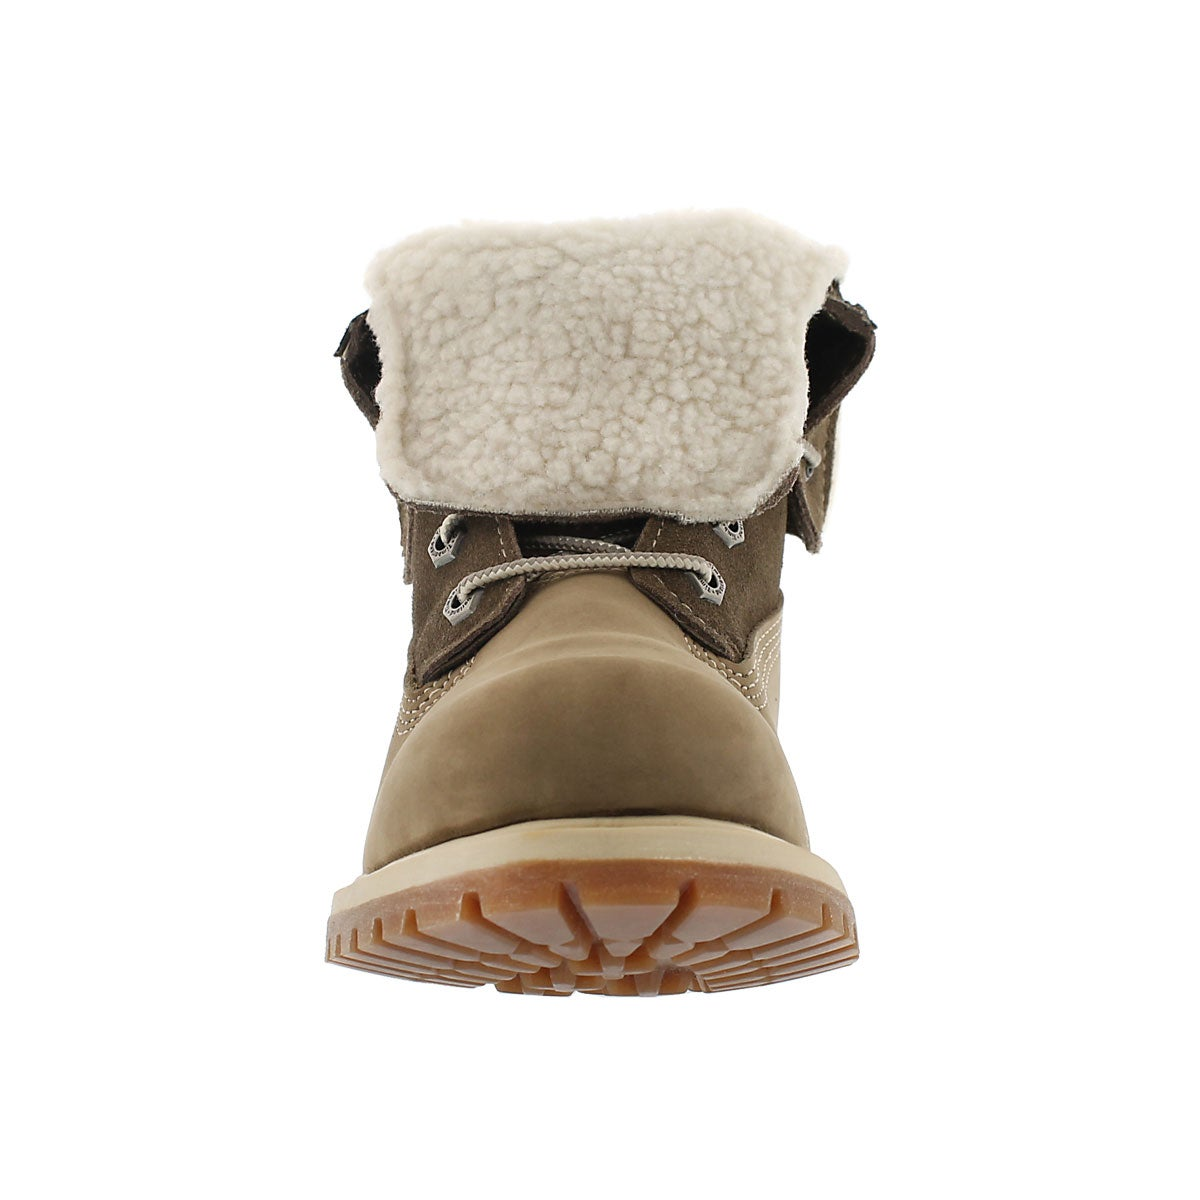 Lds Authentics Teddy fold down tpe boot